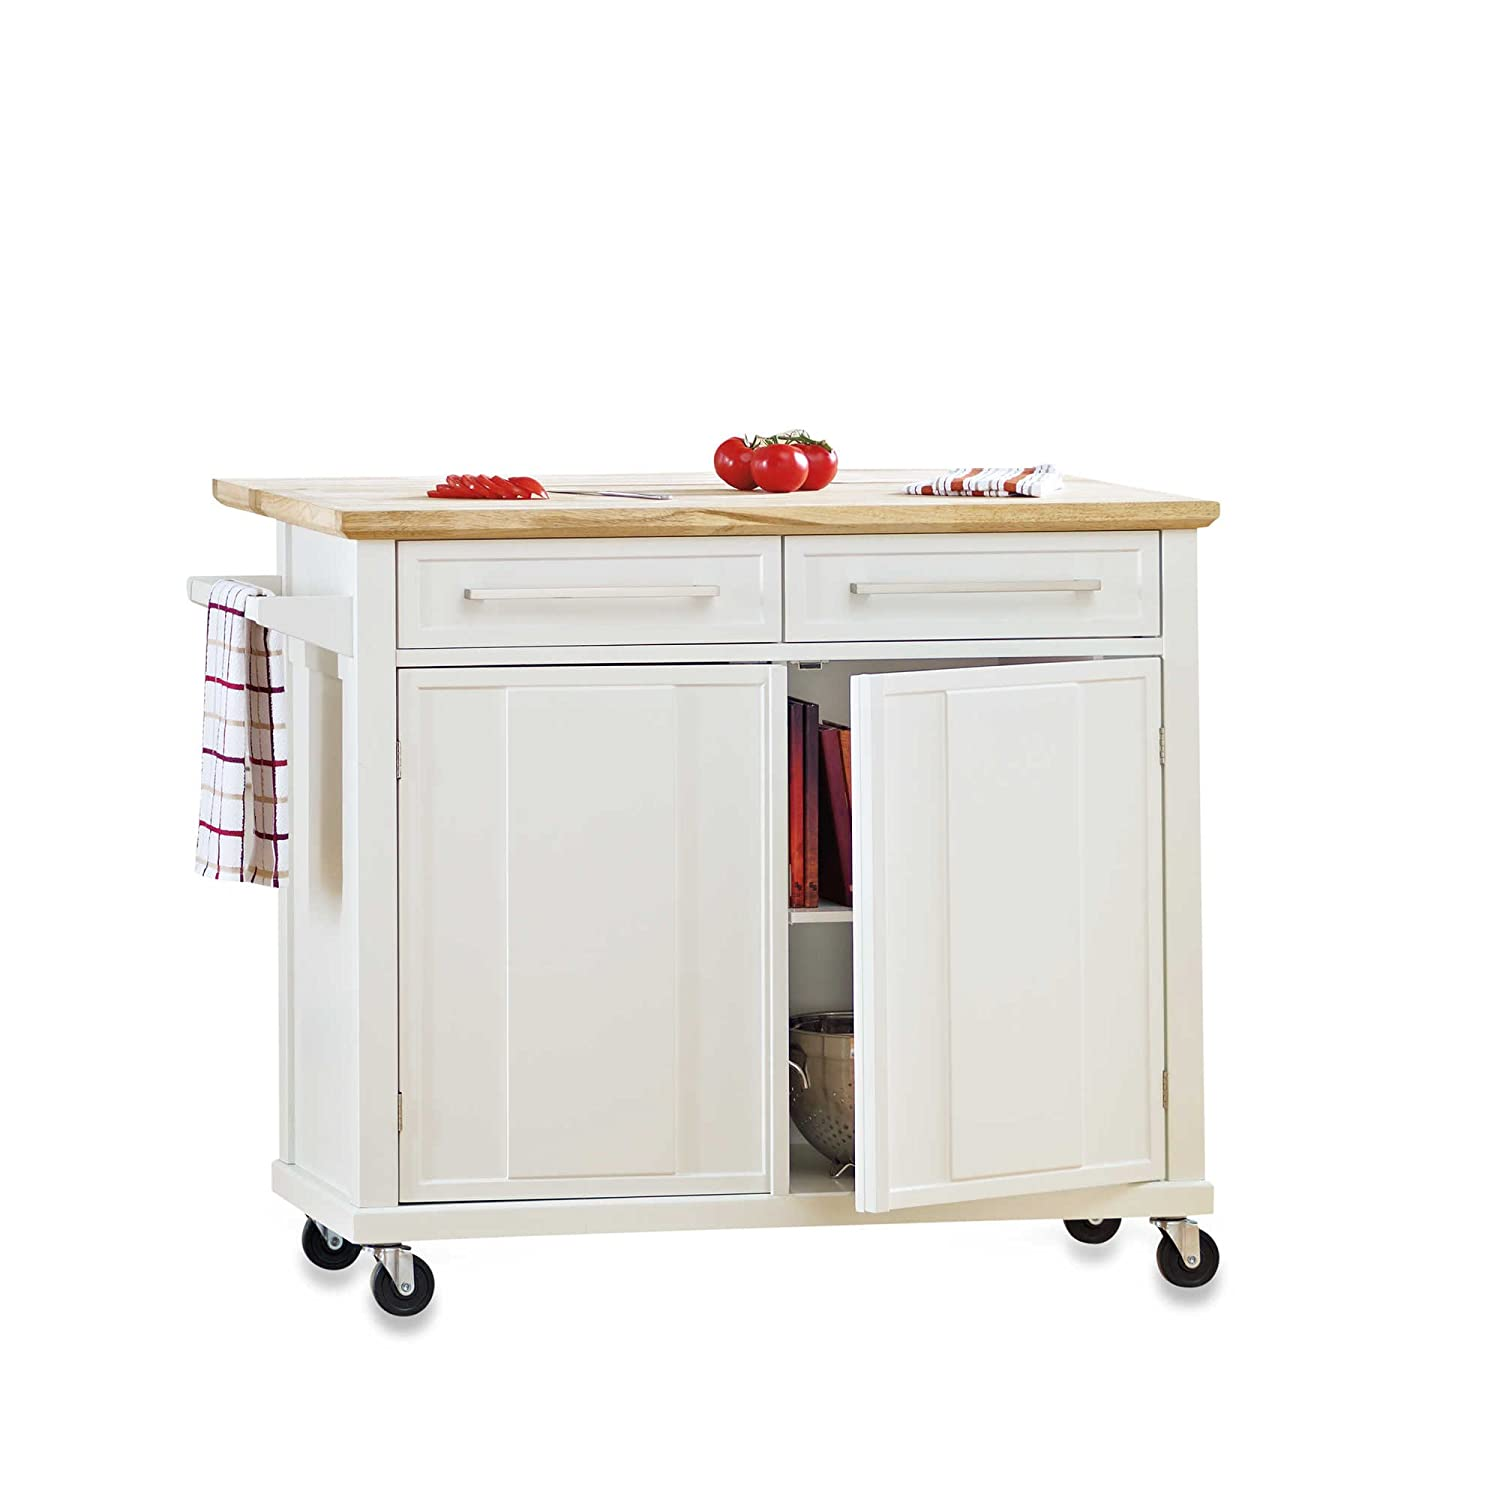 kitchen island with trash bin full size of kitchen islands with amazoncom style and function real simple rolling kitchen island easy and convenient great for small spaces in white kitchen u0026 dining